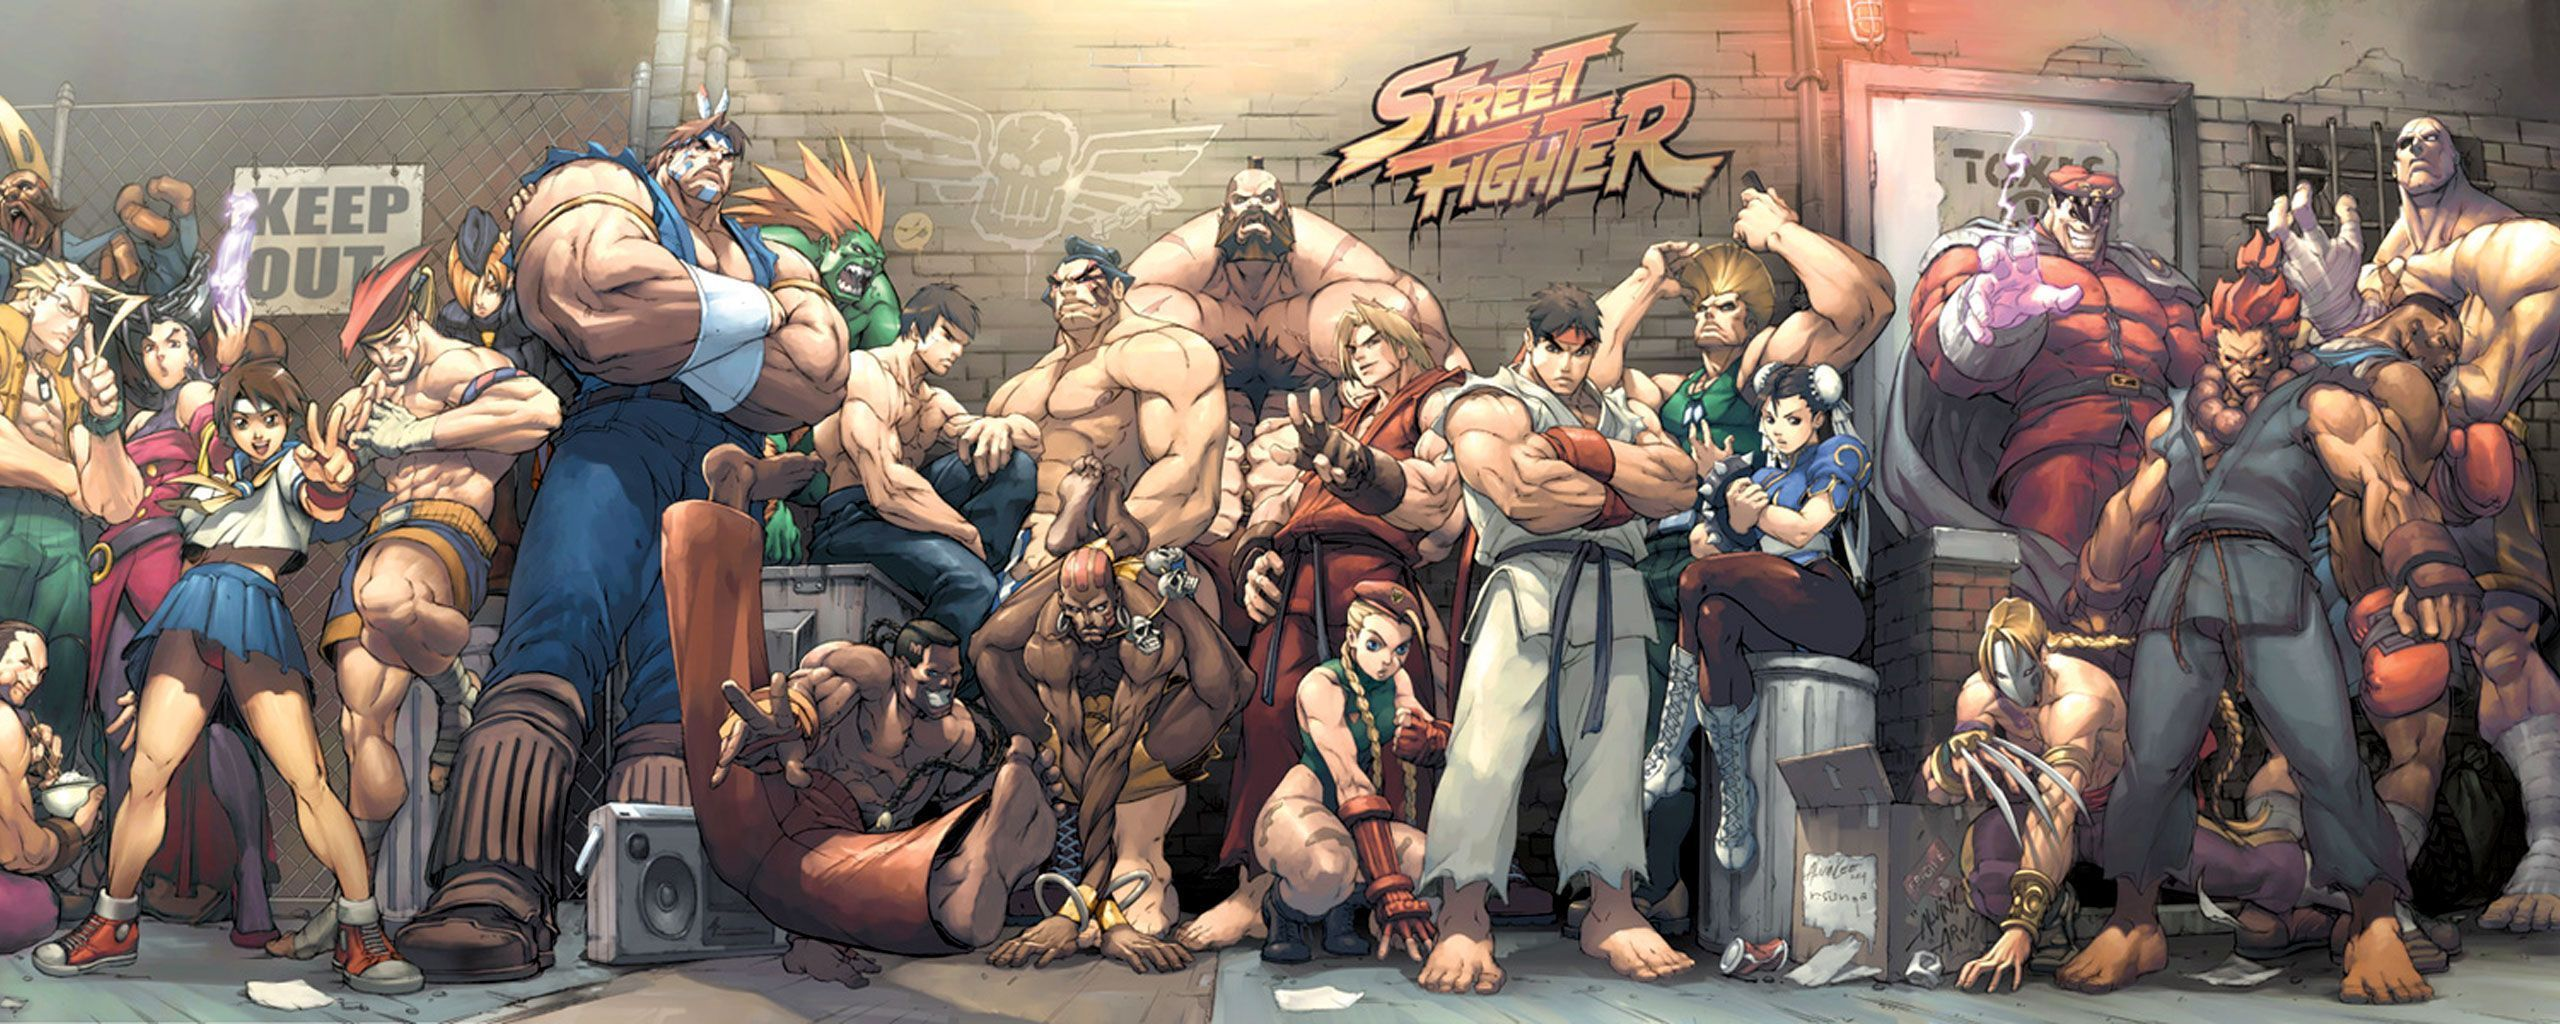 Street Fighter HD Wallpapers Wallpaper Cave Images